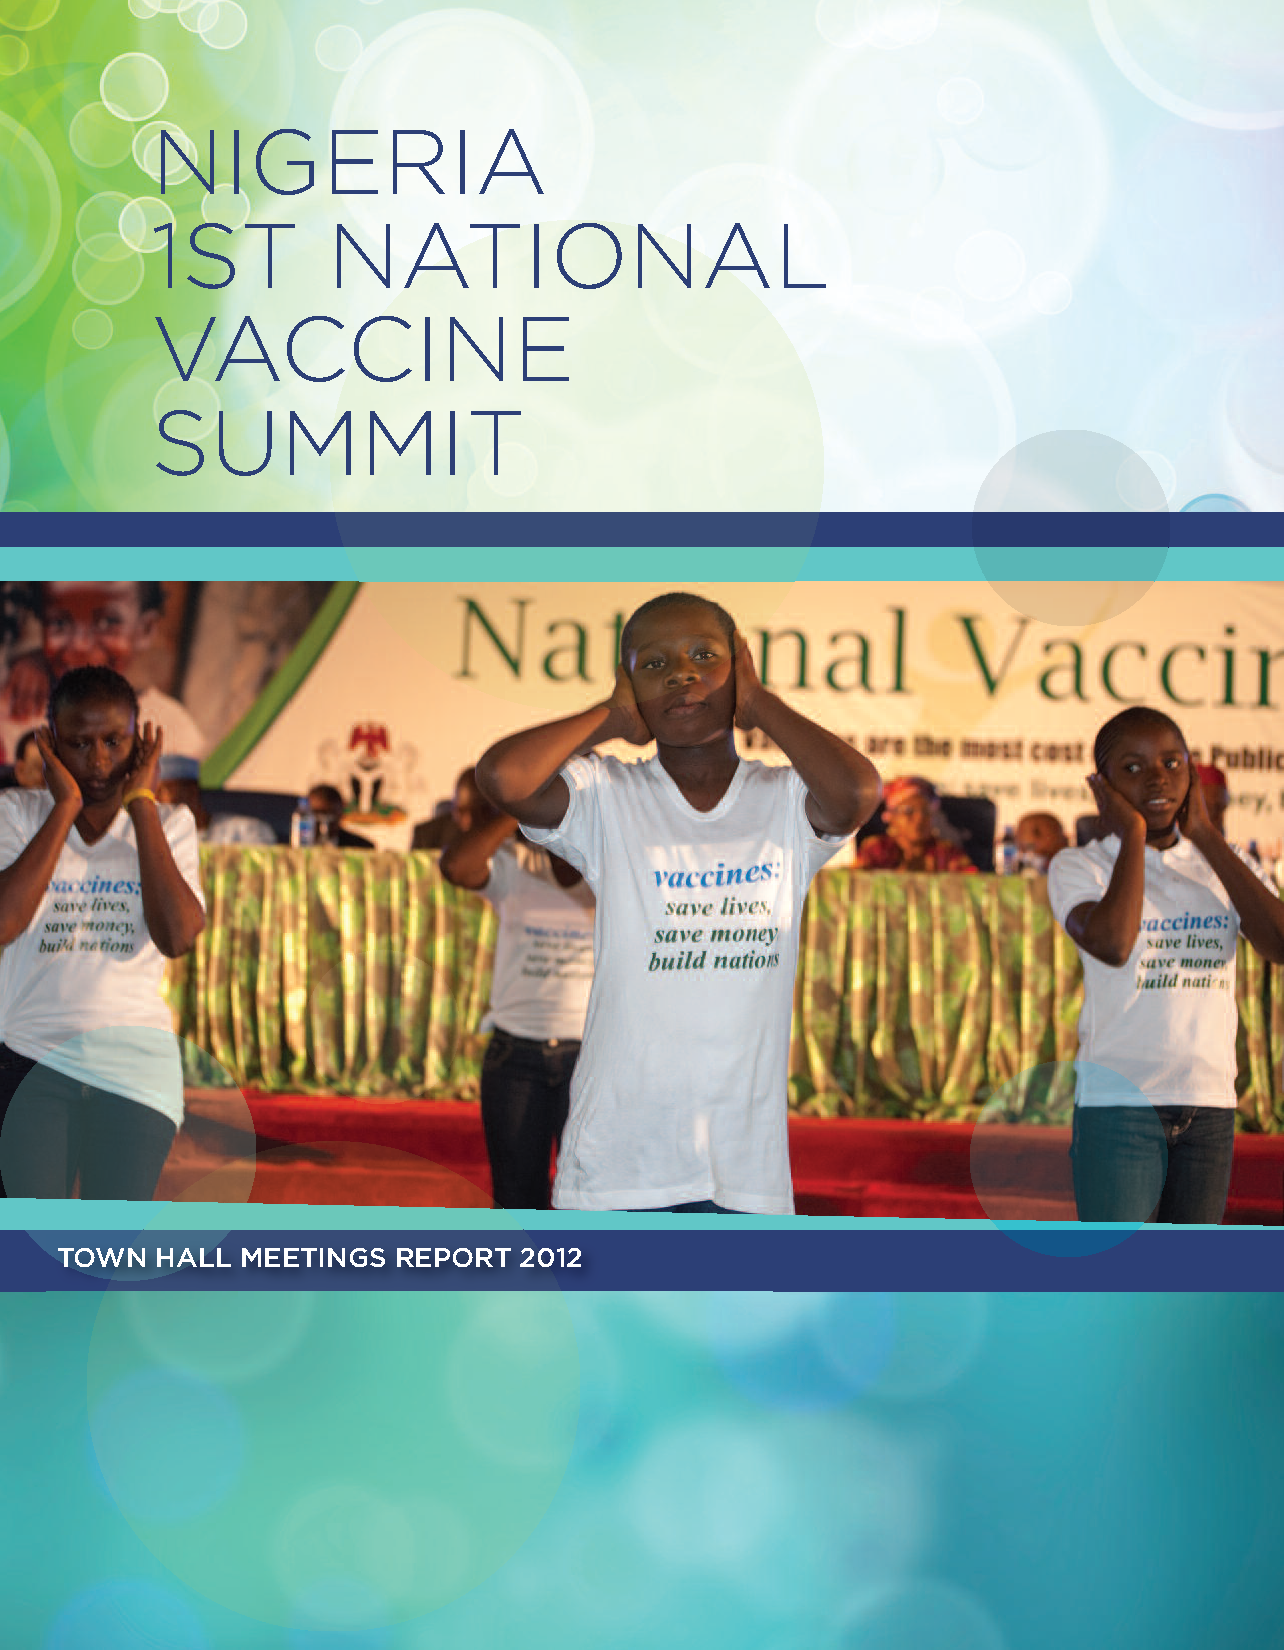 National Vaccine Summit Town Hall Report